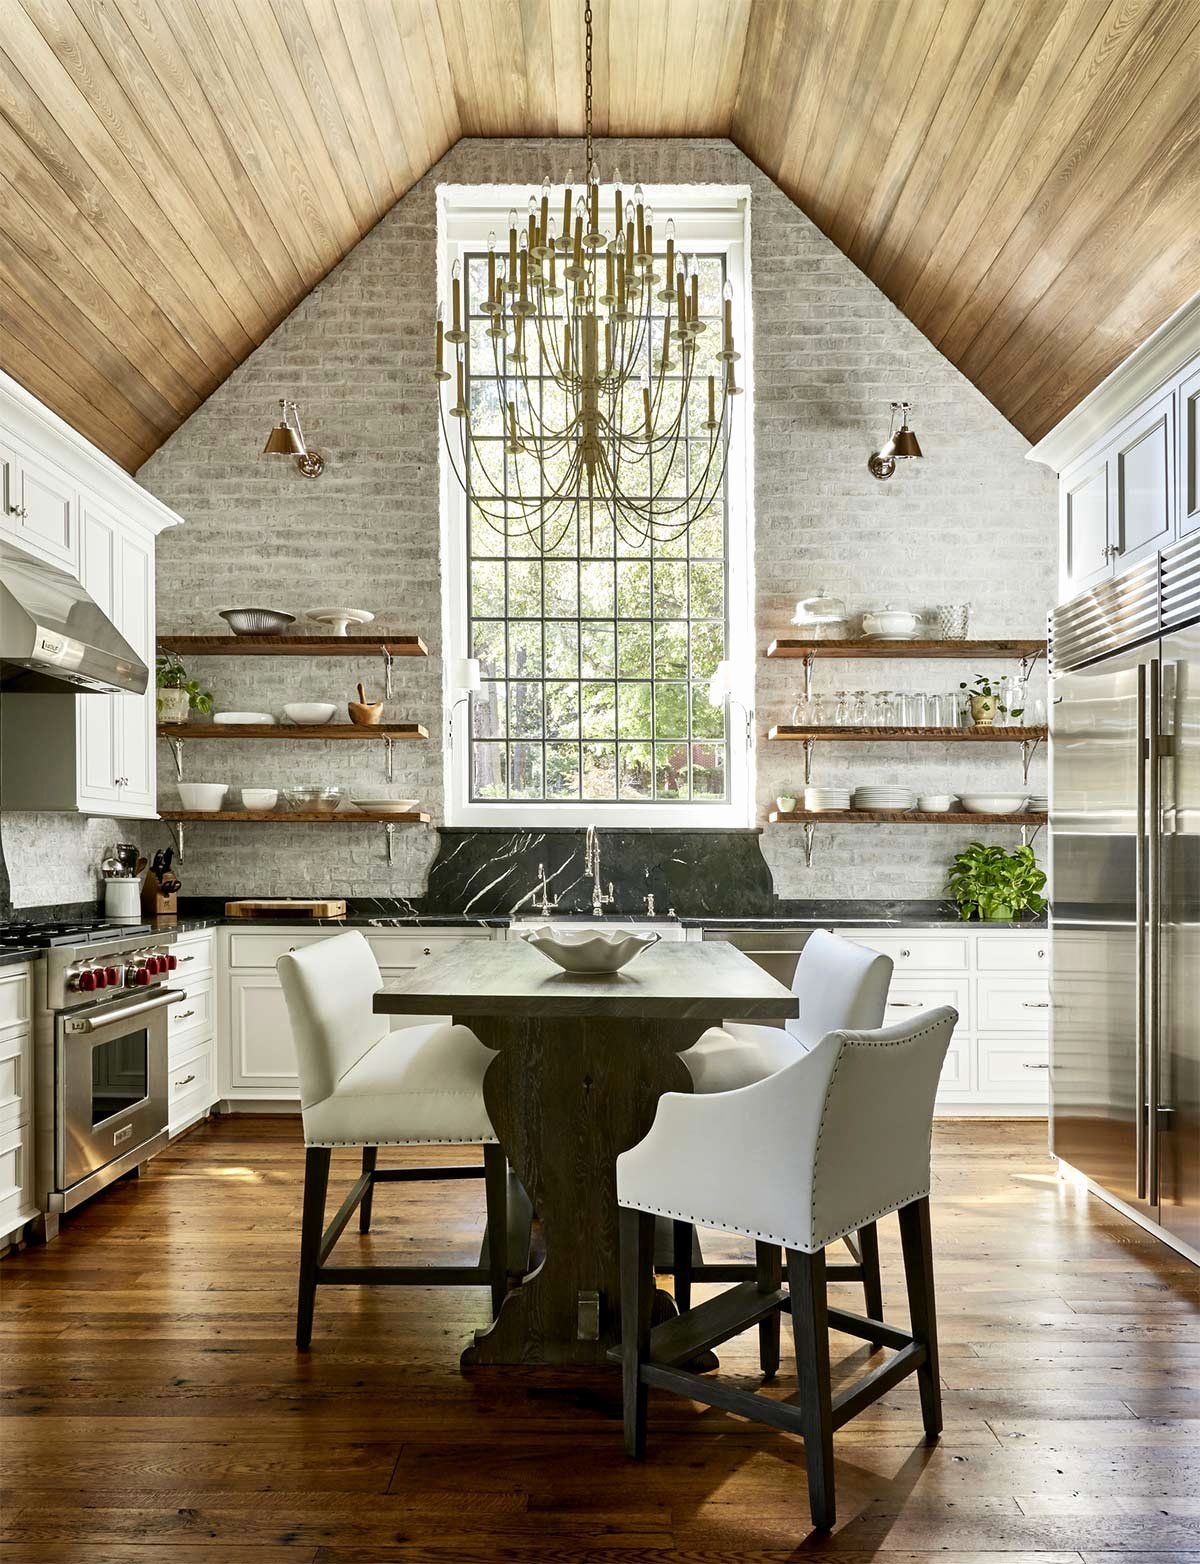 Vaulted Ceilings In Kitchen New Vaulted Ceilings In The Kitchen Pros And Cons Plank A Vaulted Ceiling Kitchen Vaulted Ceiling Living Room Vaulted Ceiling Decor